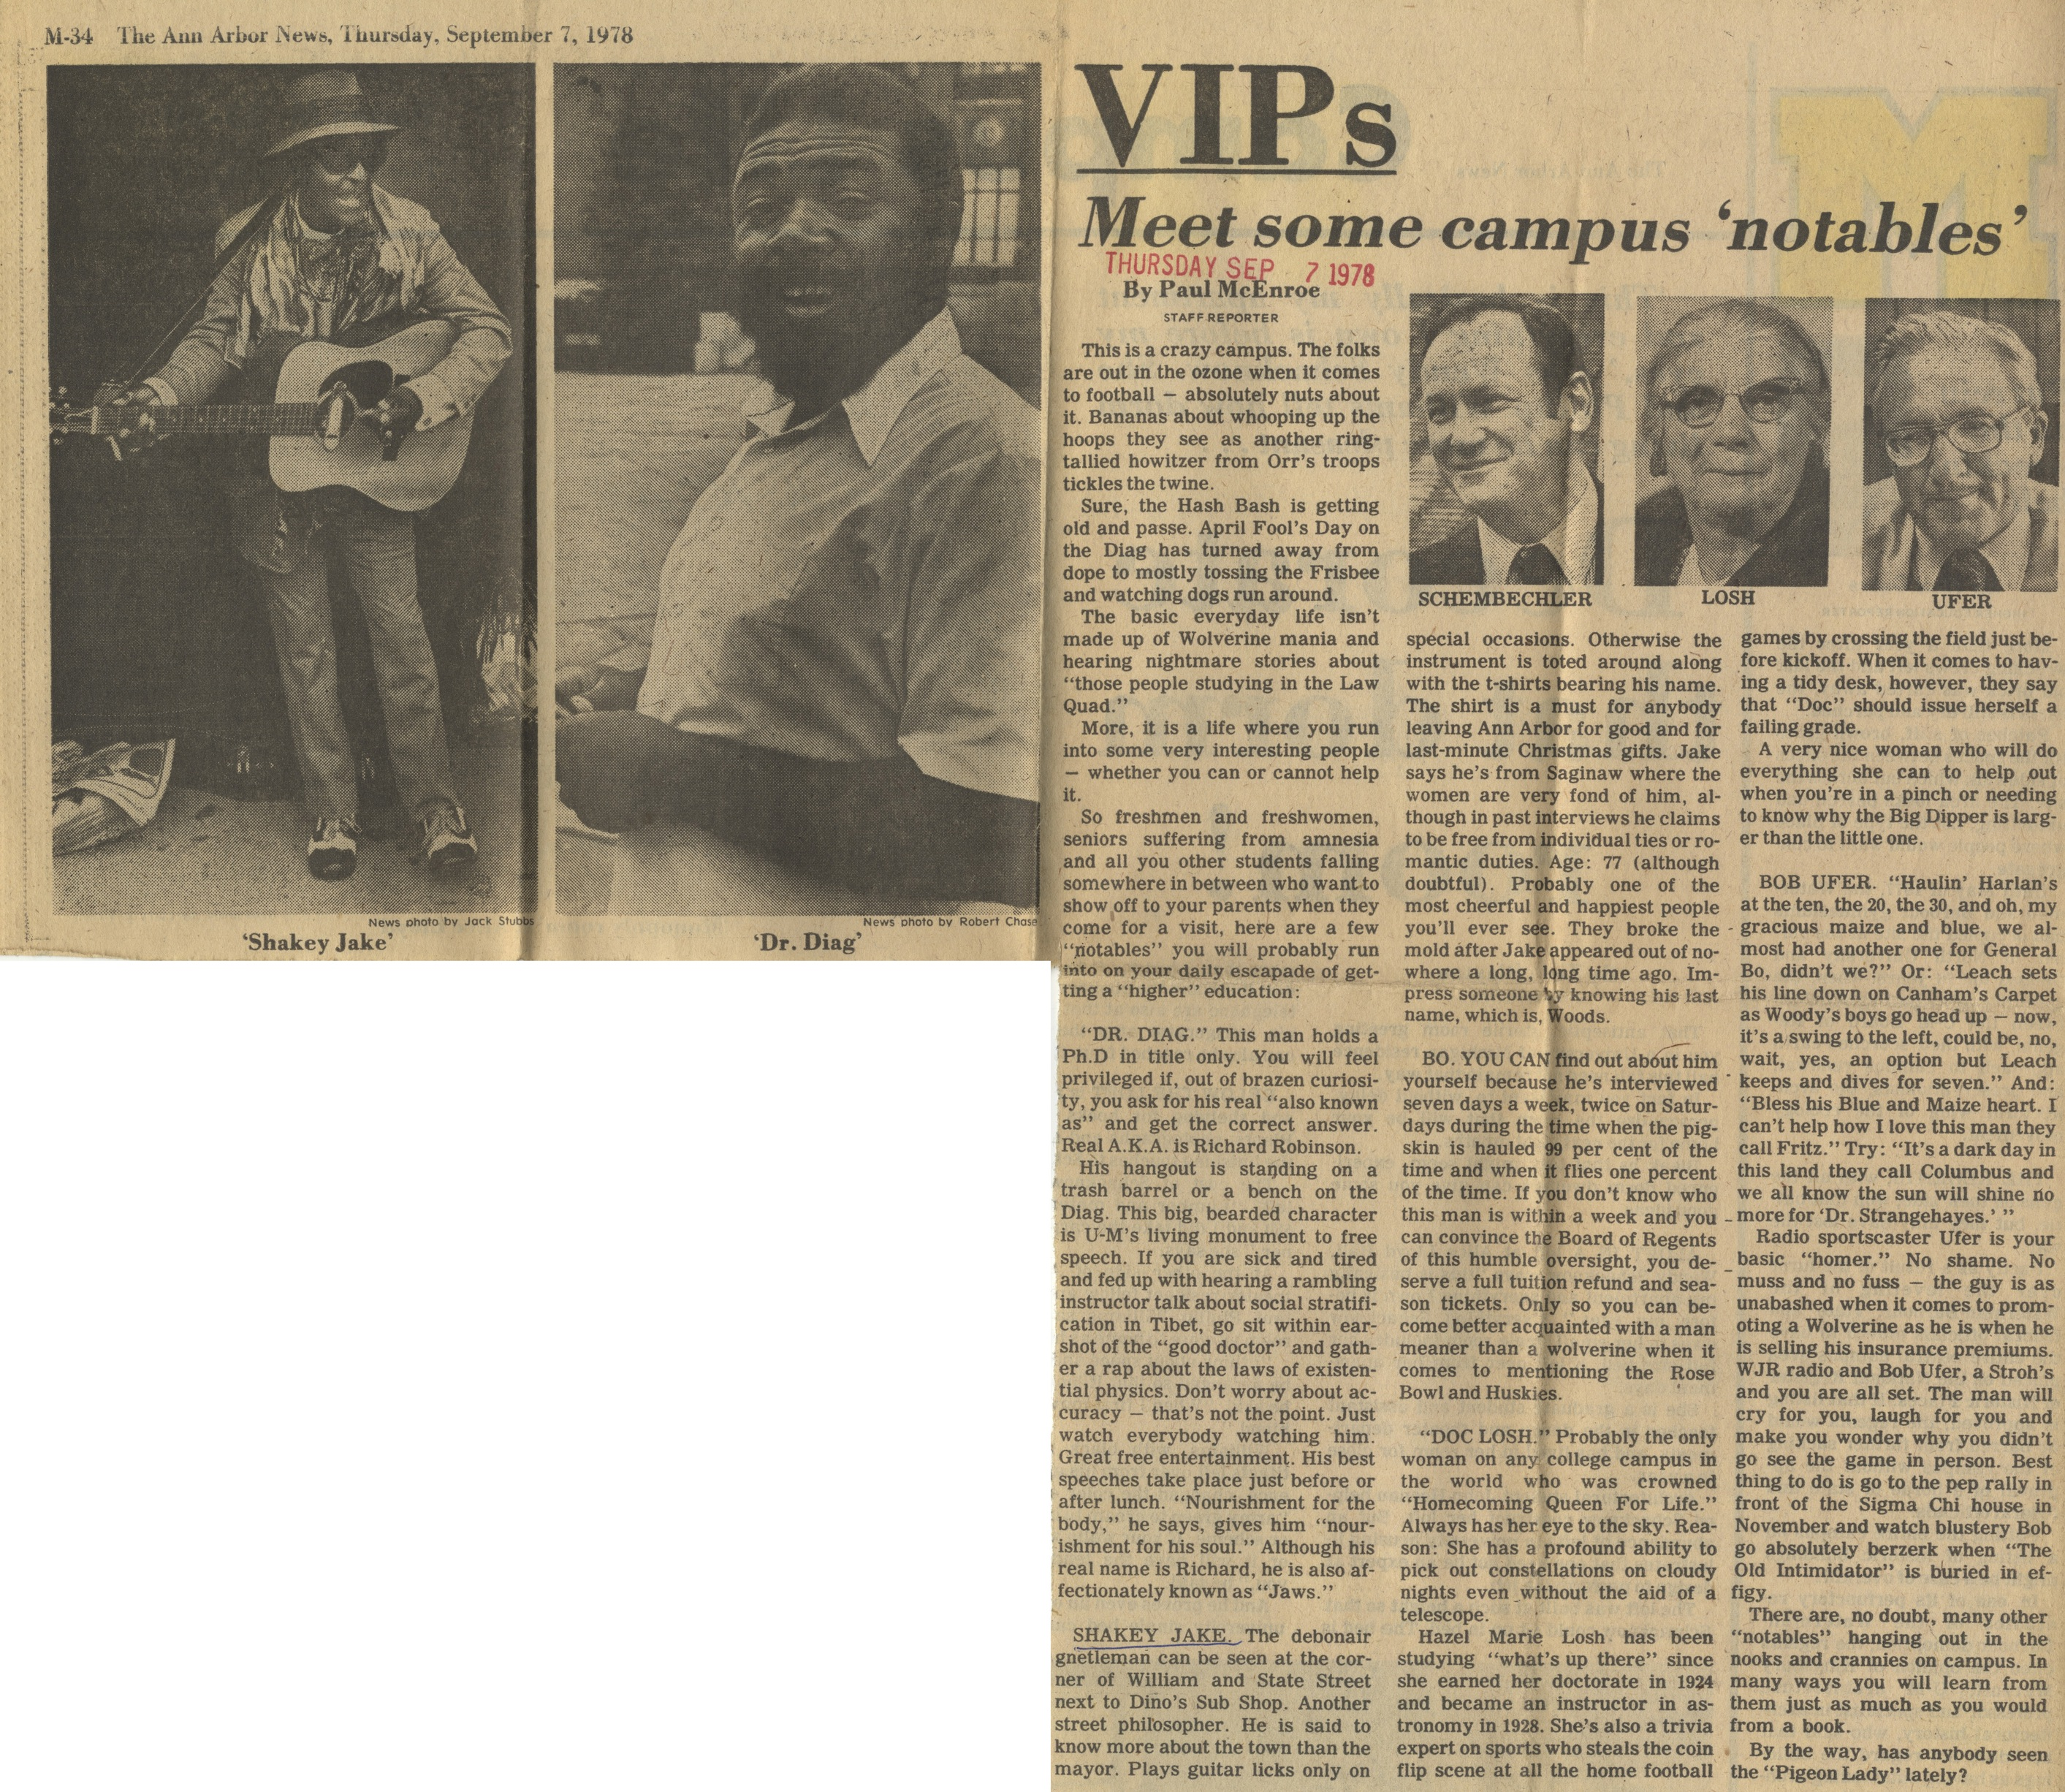 VIPS: Meet Some Campus 'Notables' image